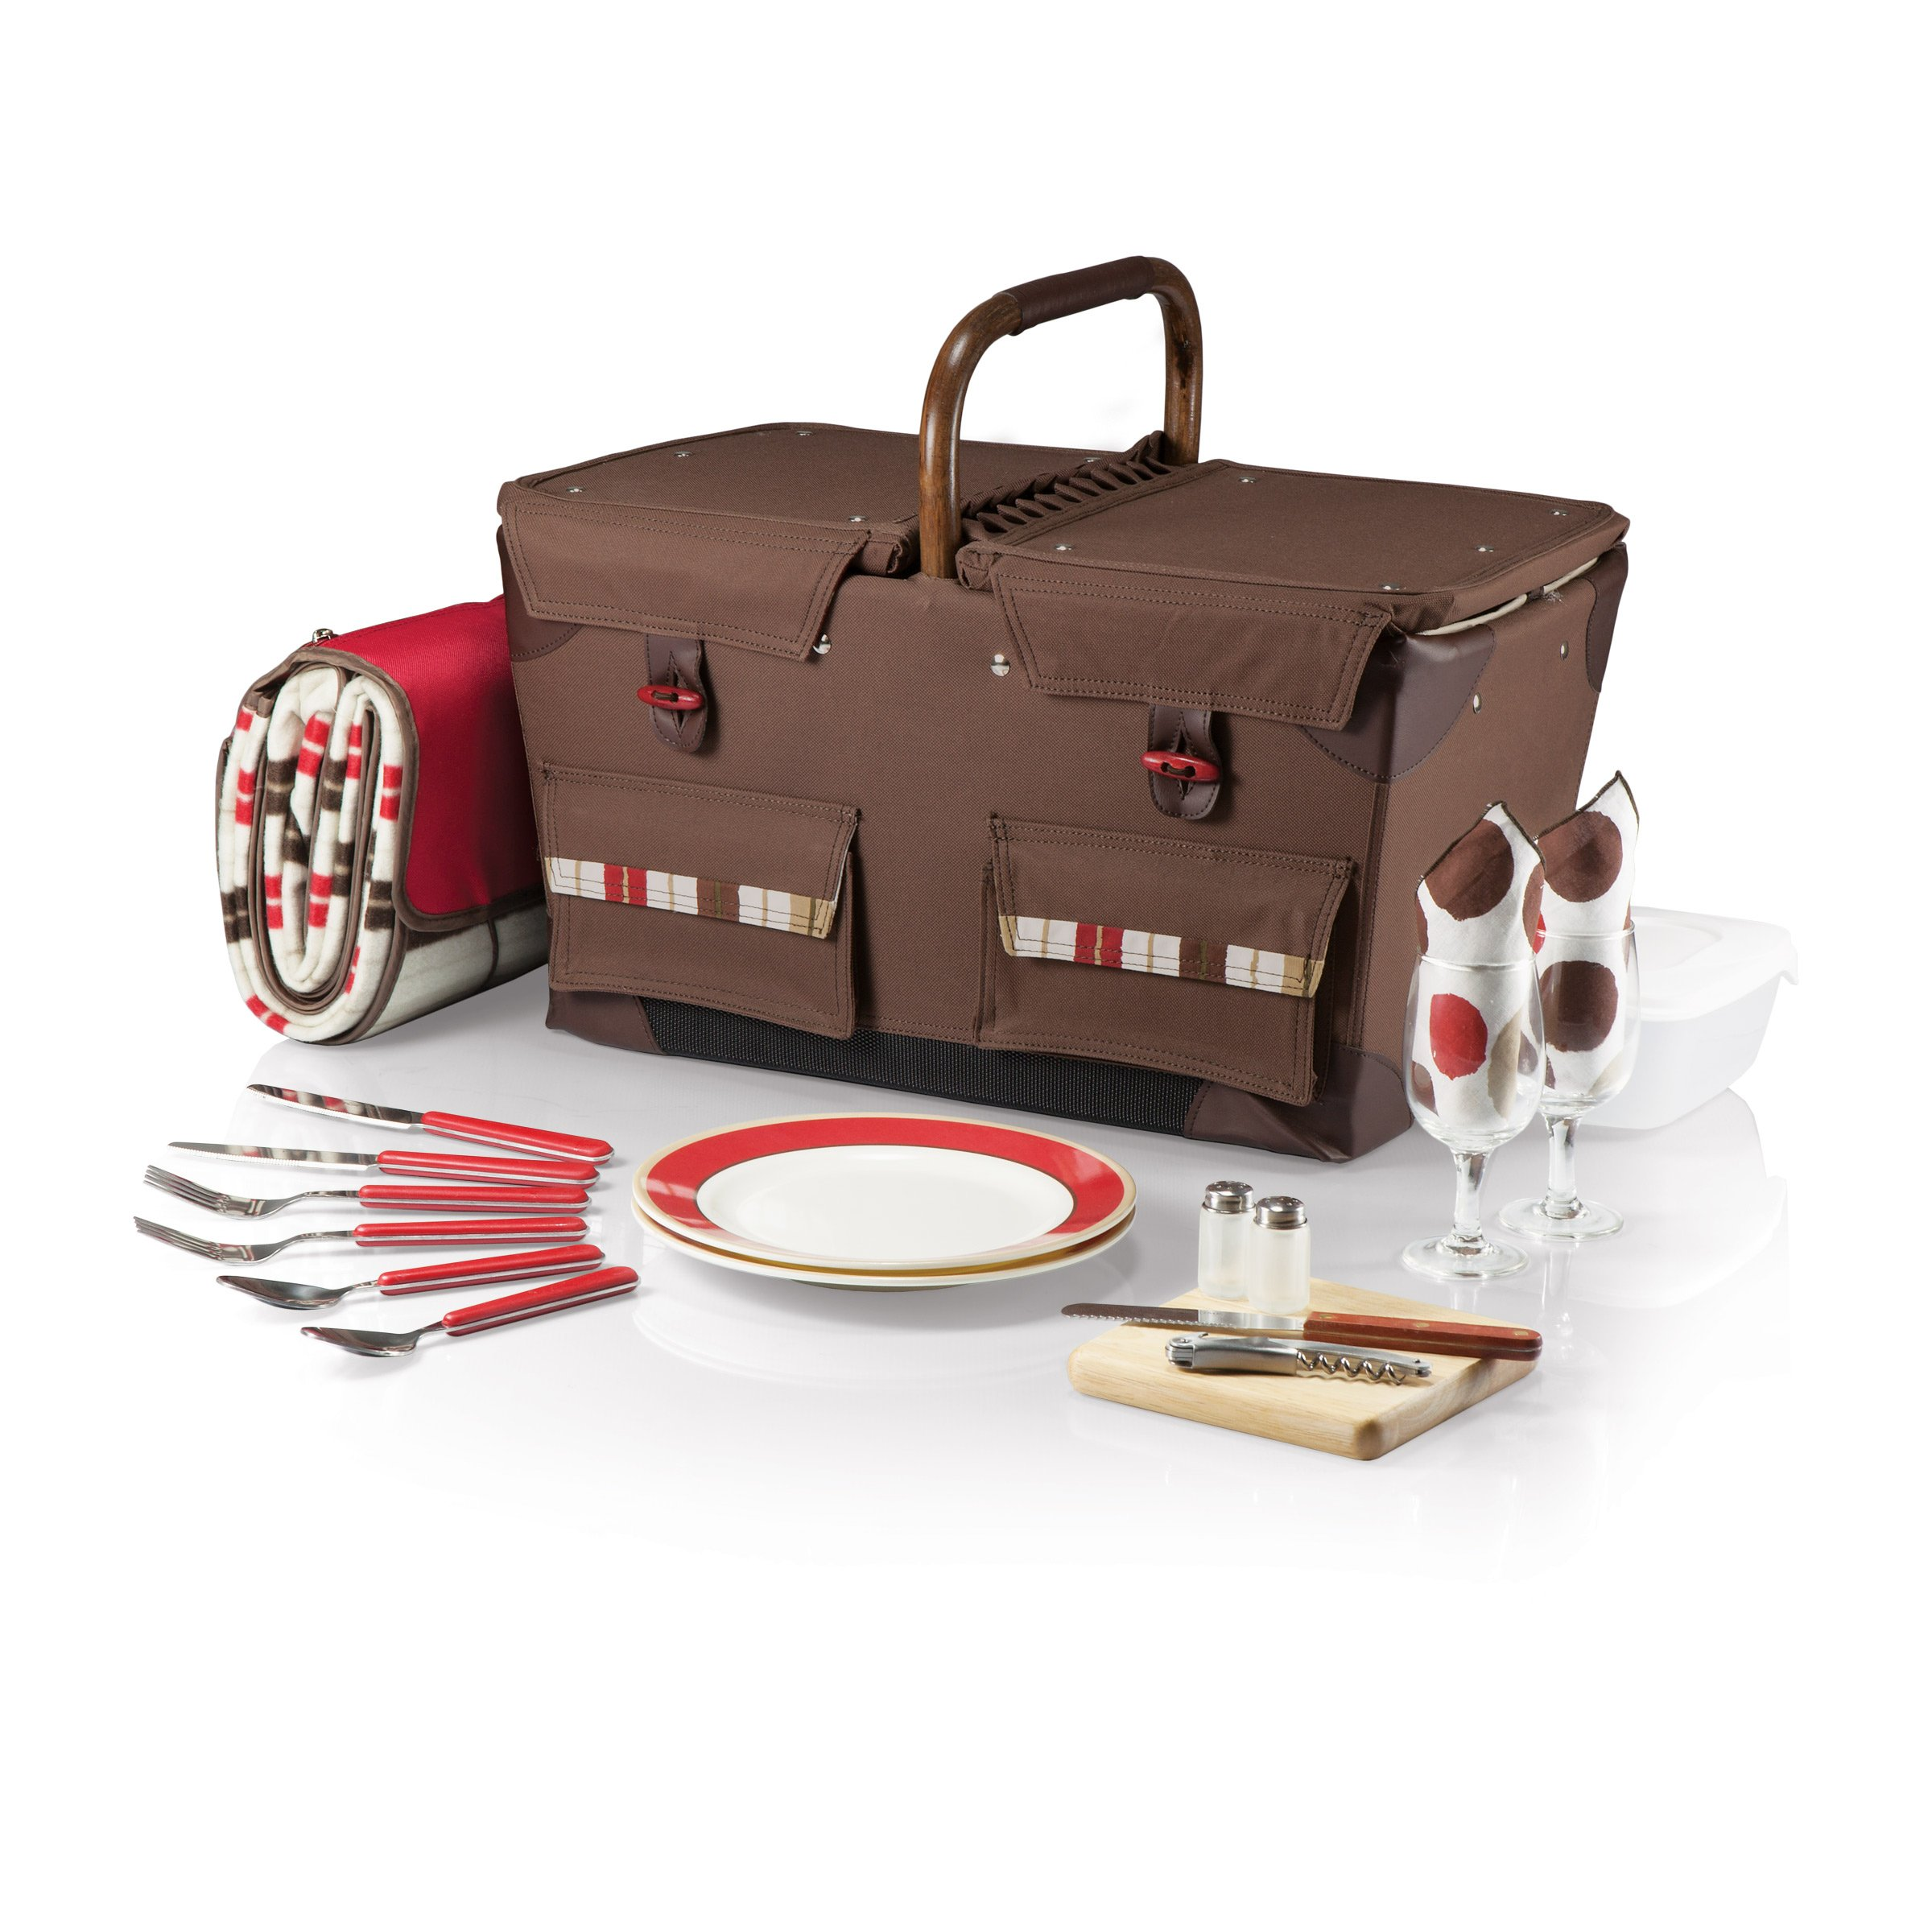 Picnic Time Pioneer Original Design Picnic Basket with Deluxe Service for Two, Moka Collection